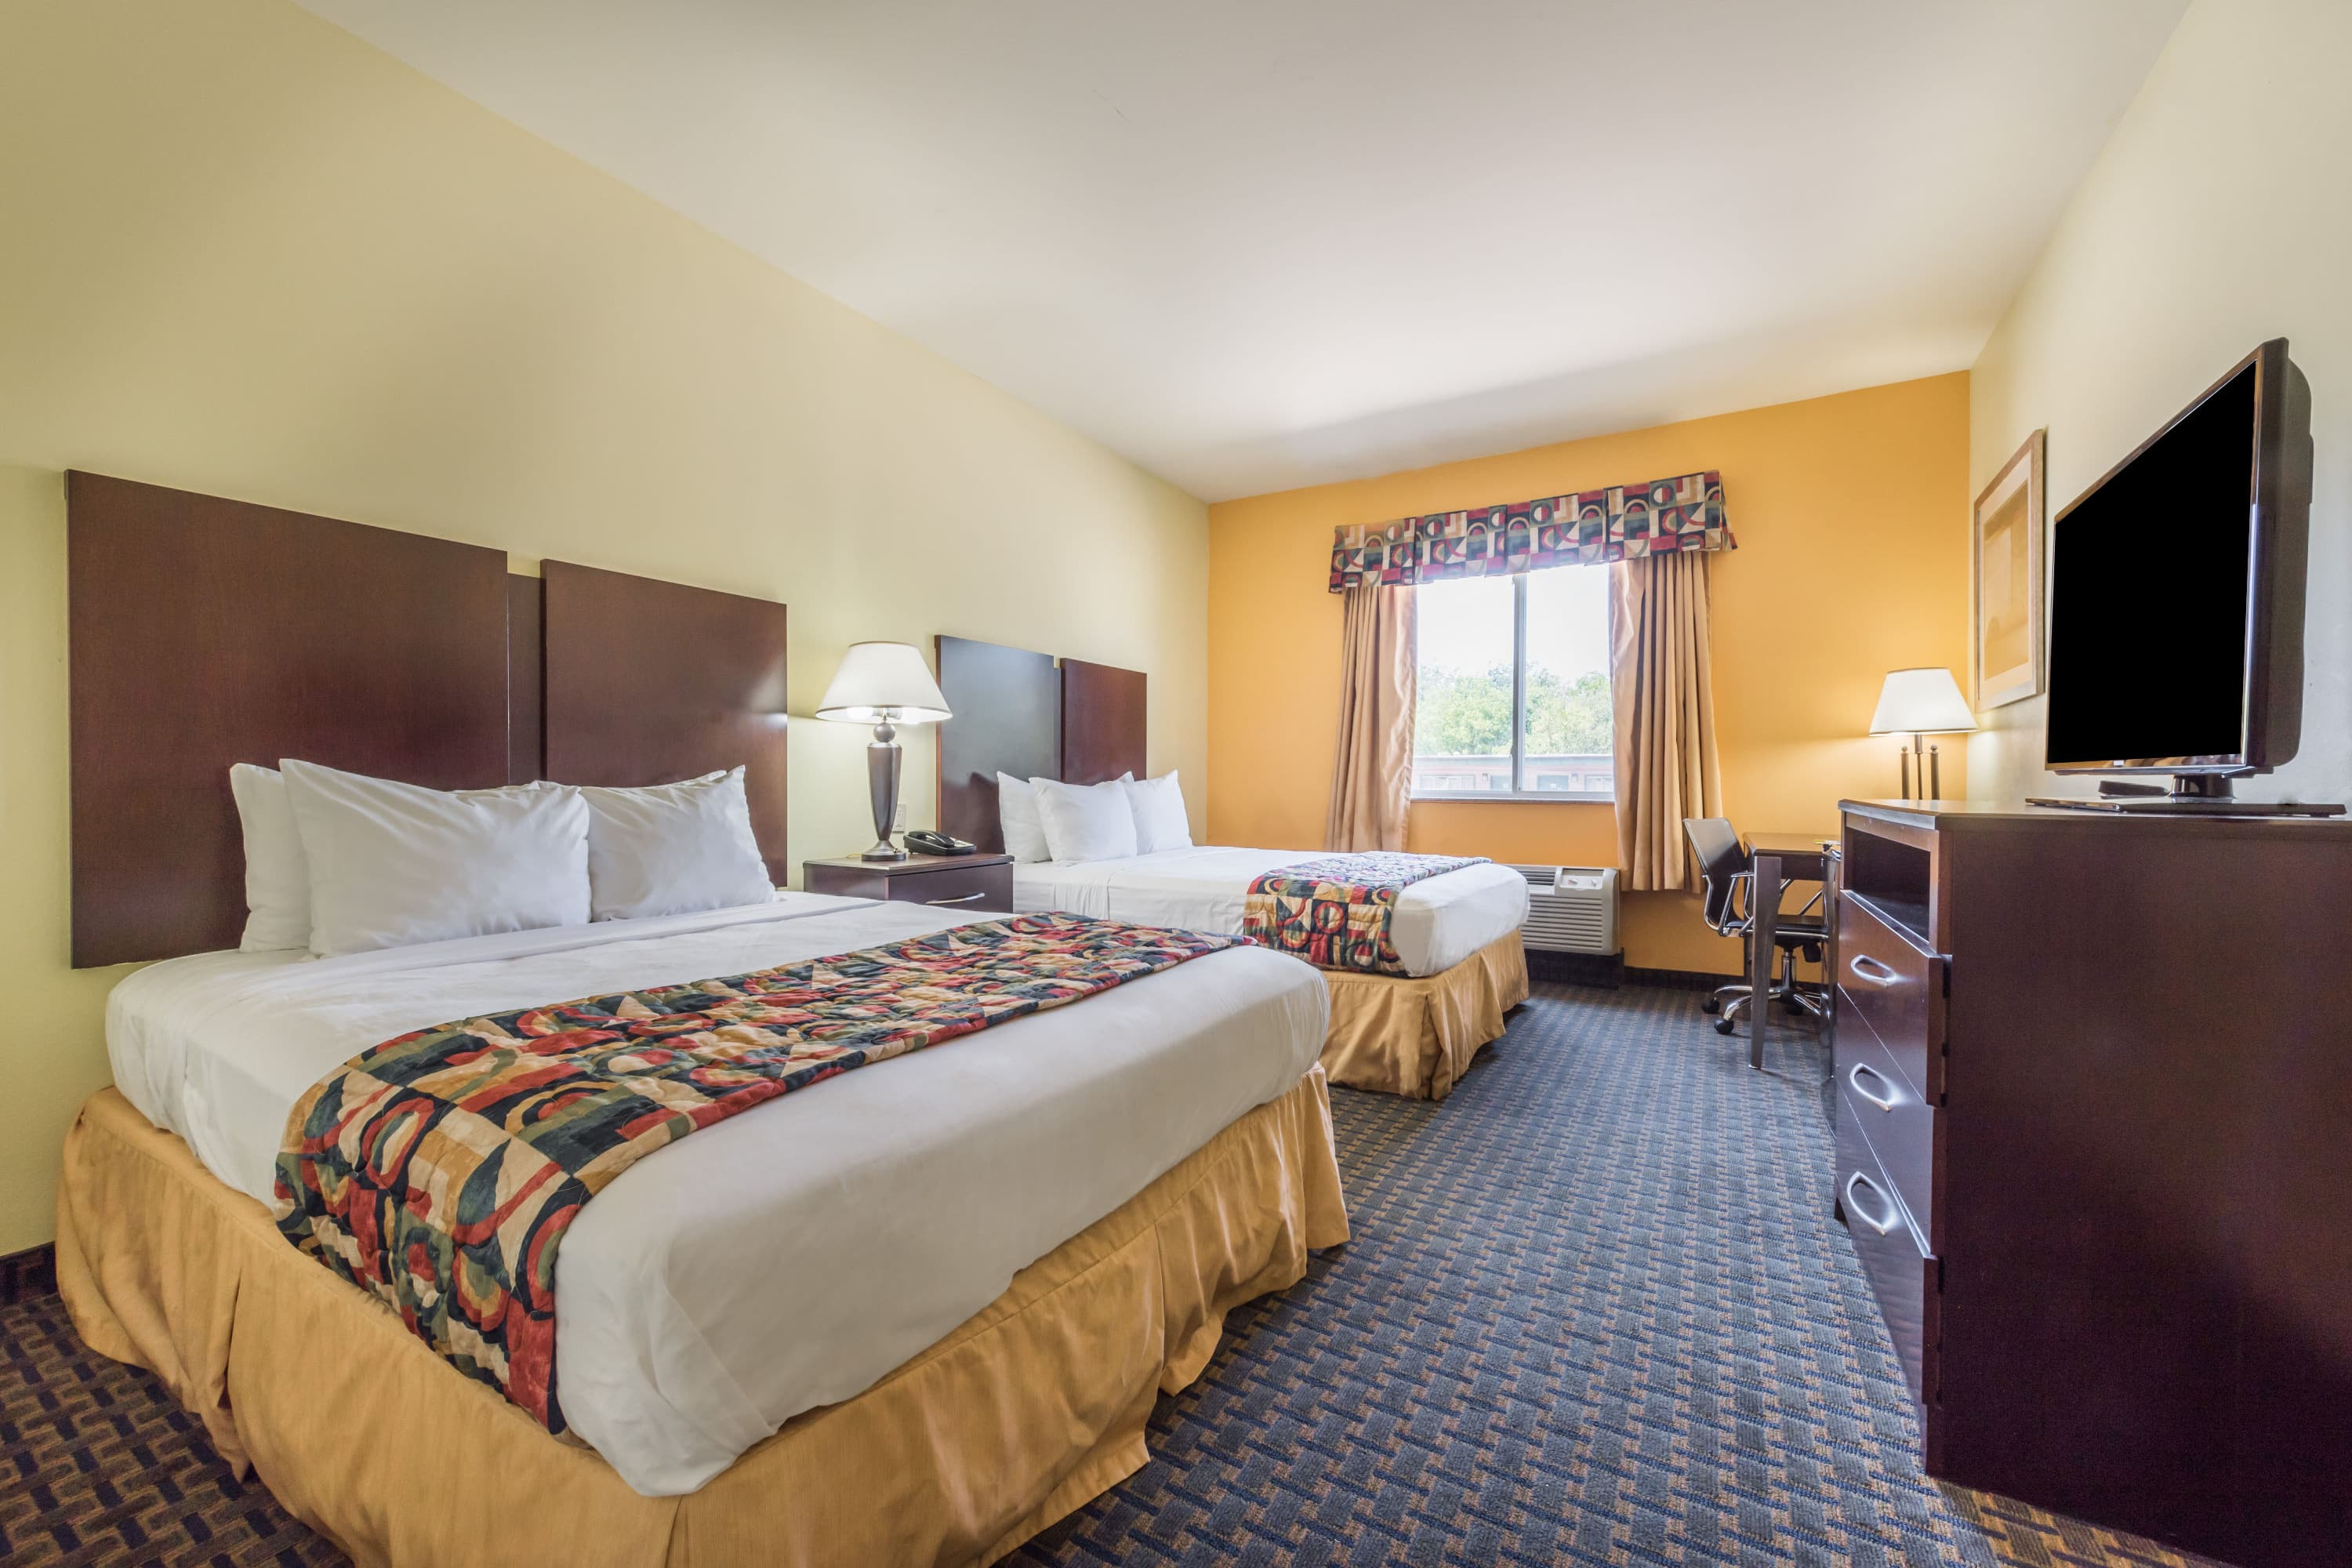 Guest room at the Days Inn & Suites Cleburne TX in Cleburne, Texas